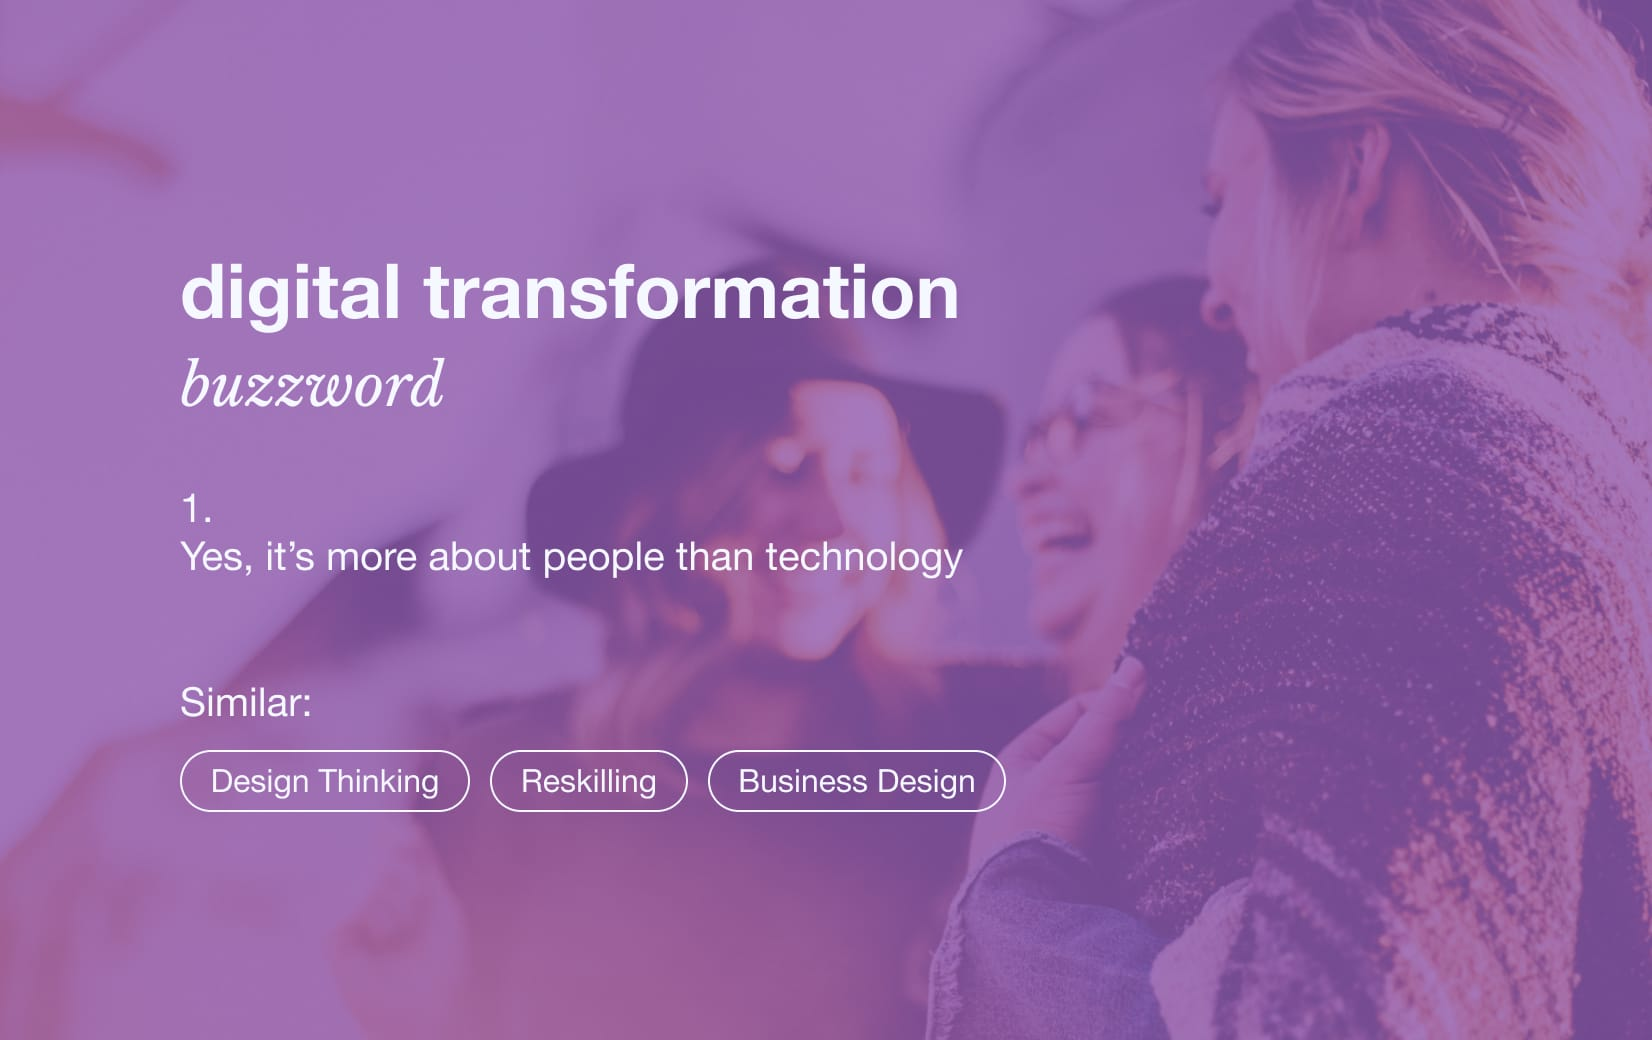 Digital transformation is more about people than technology